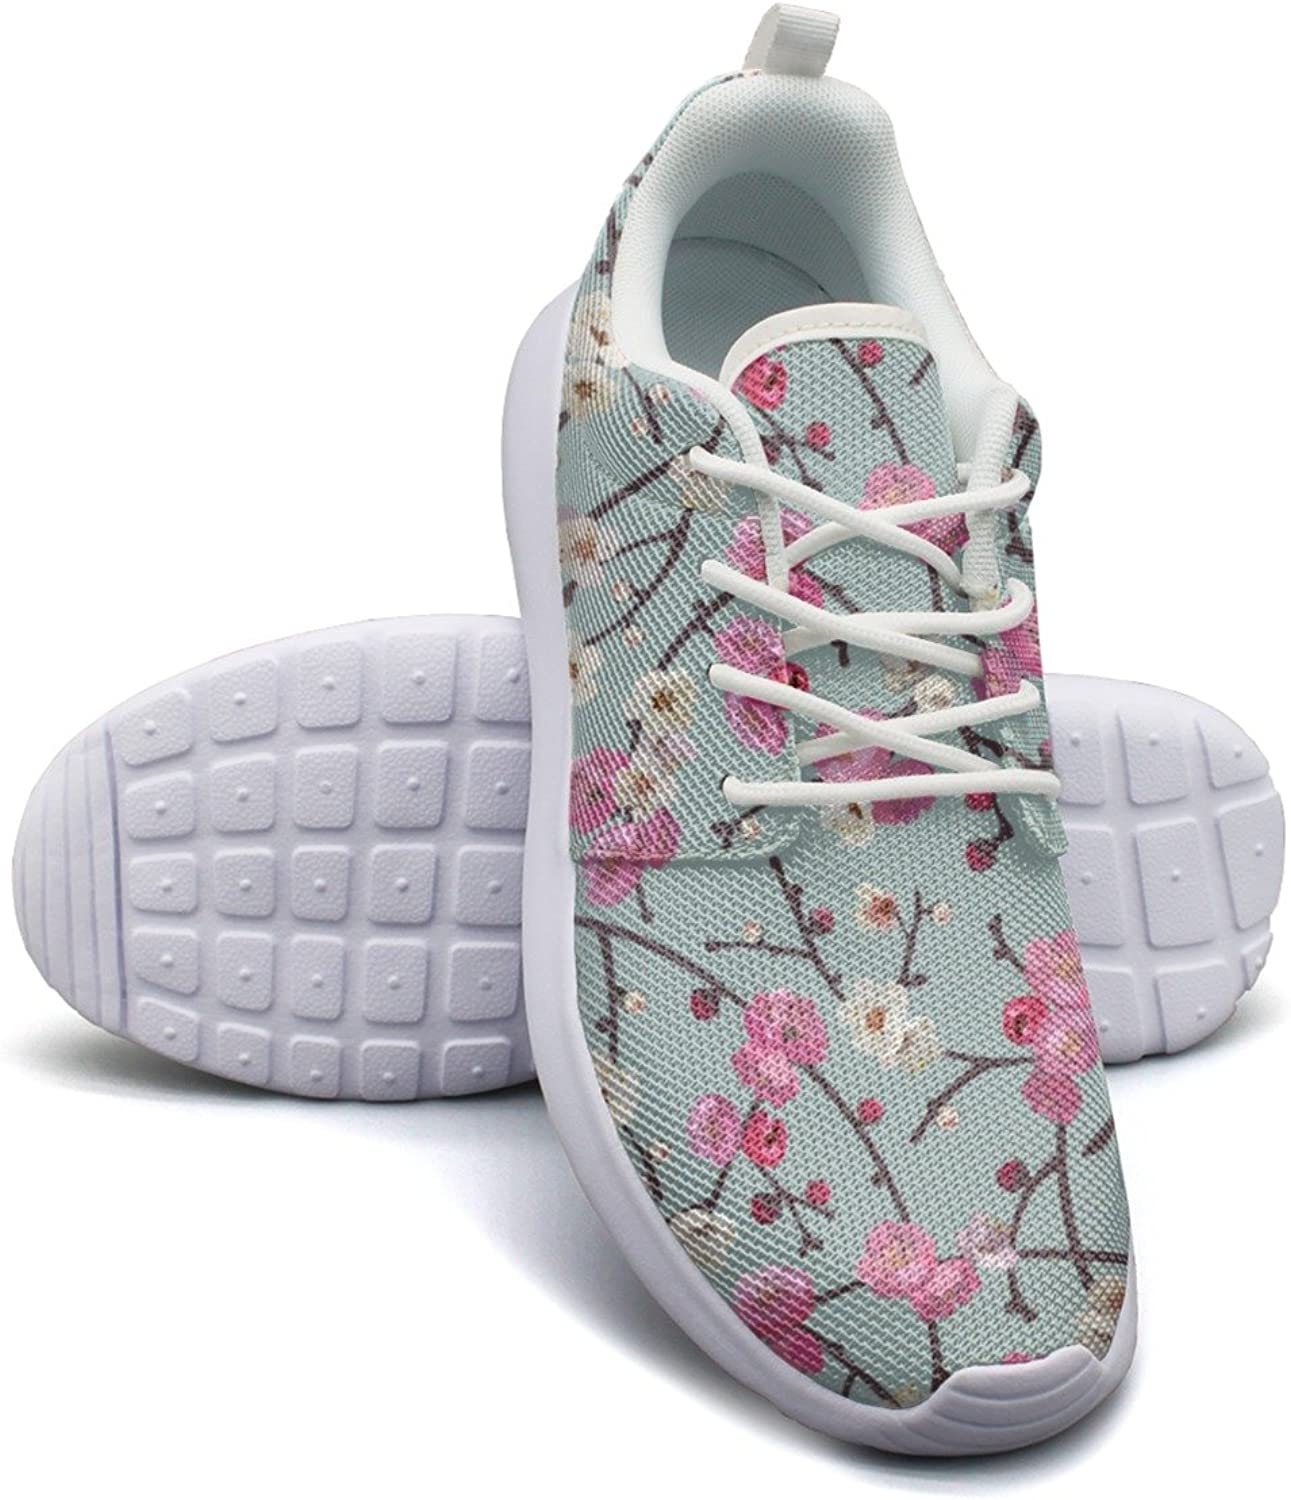 Cherry Blossom Branches Women's Fashion Running shoes Casual Mesh Lightweight Basketball Sneakers